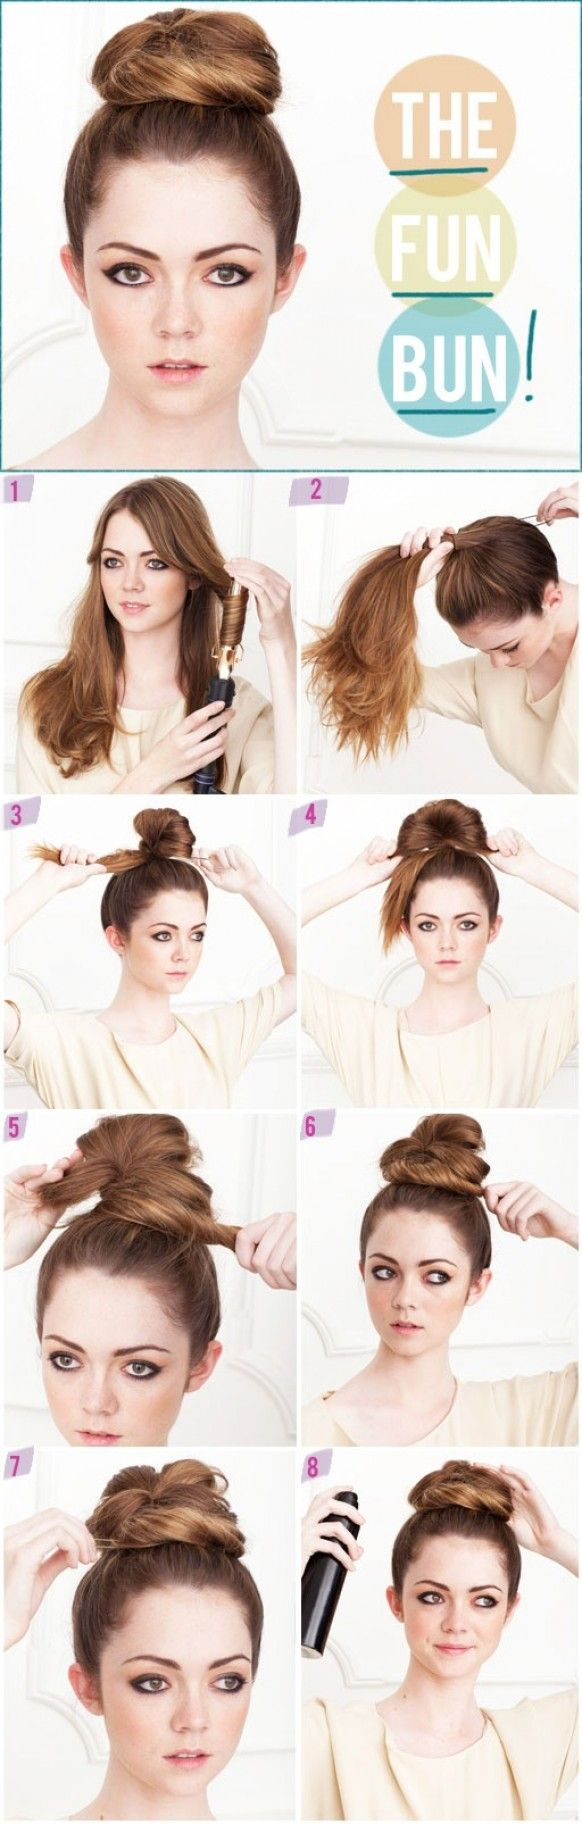 Big top knot messy bun styled to perfection. For those lazy yet still styled days.